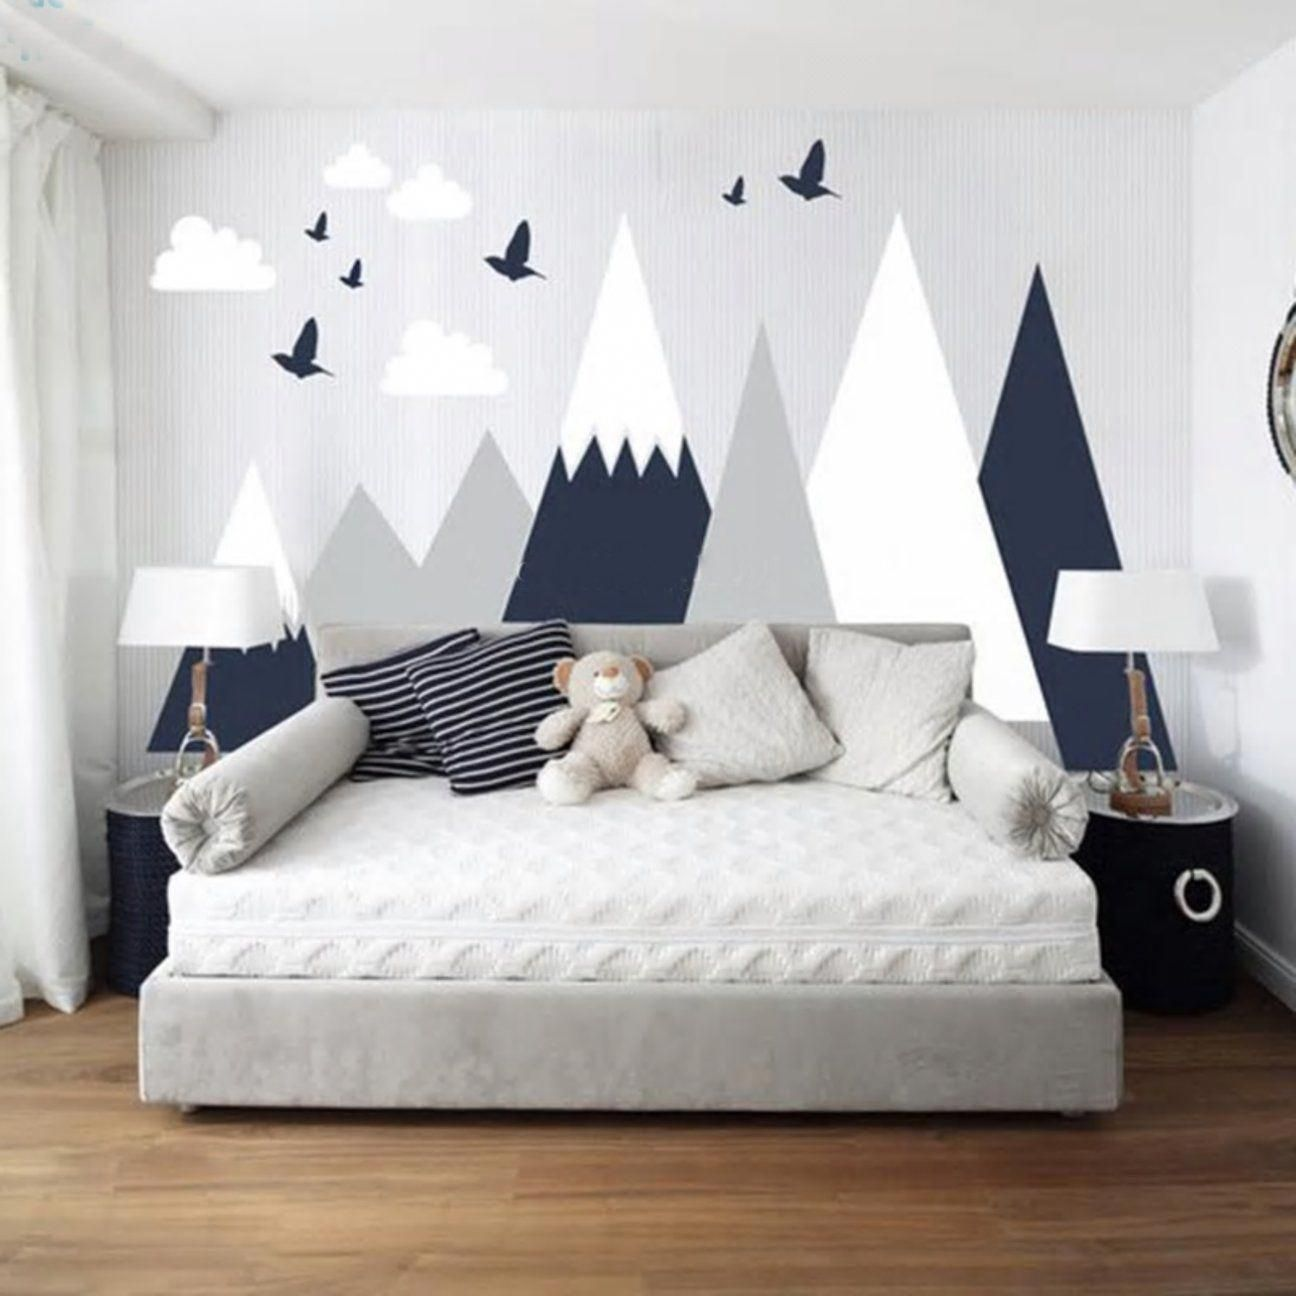 Large Mountain Mural for Childrens Bedroom en 18  Deco chambre